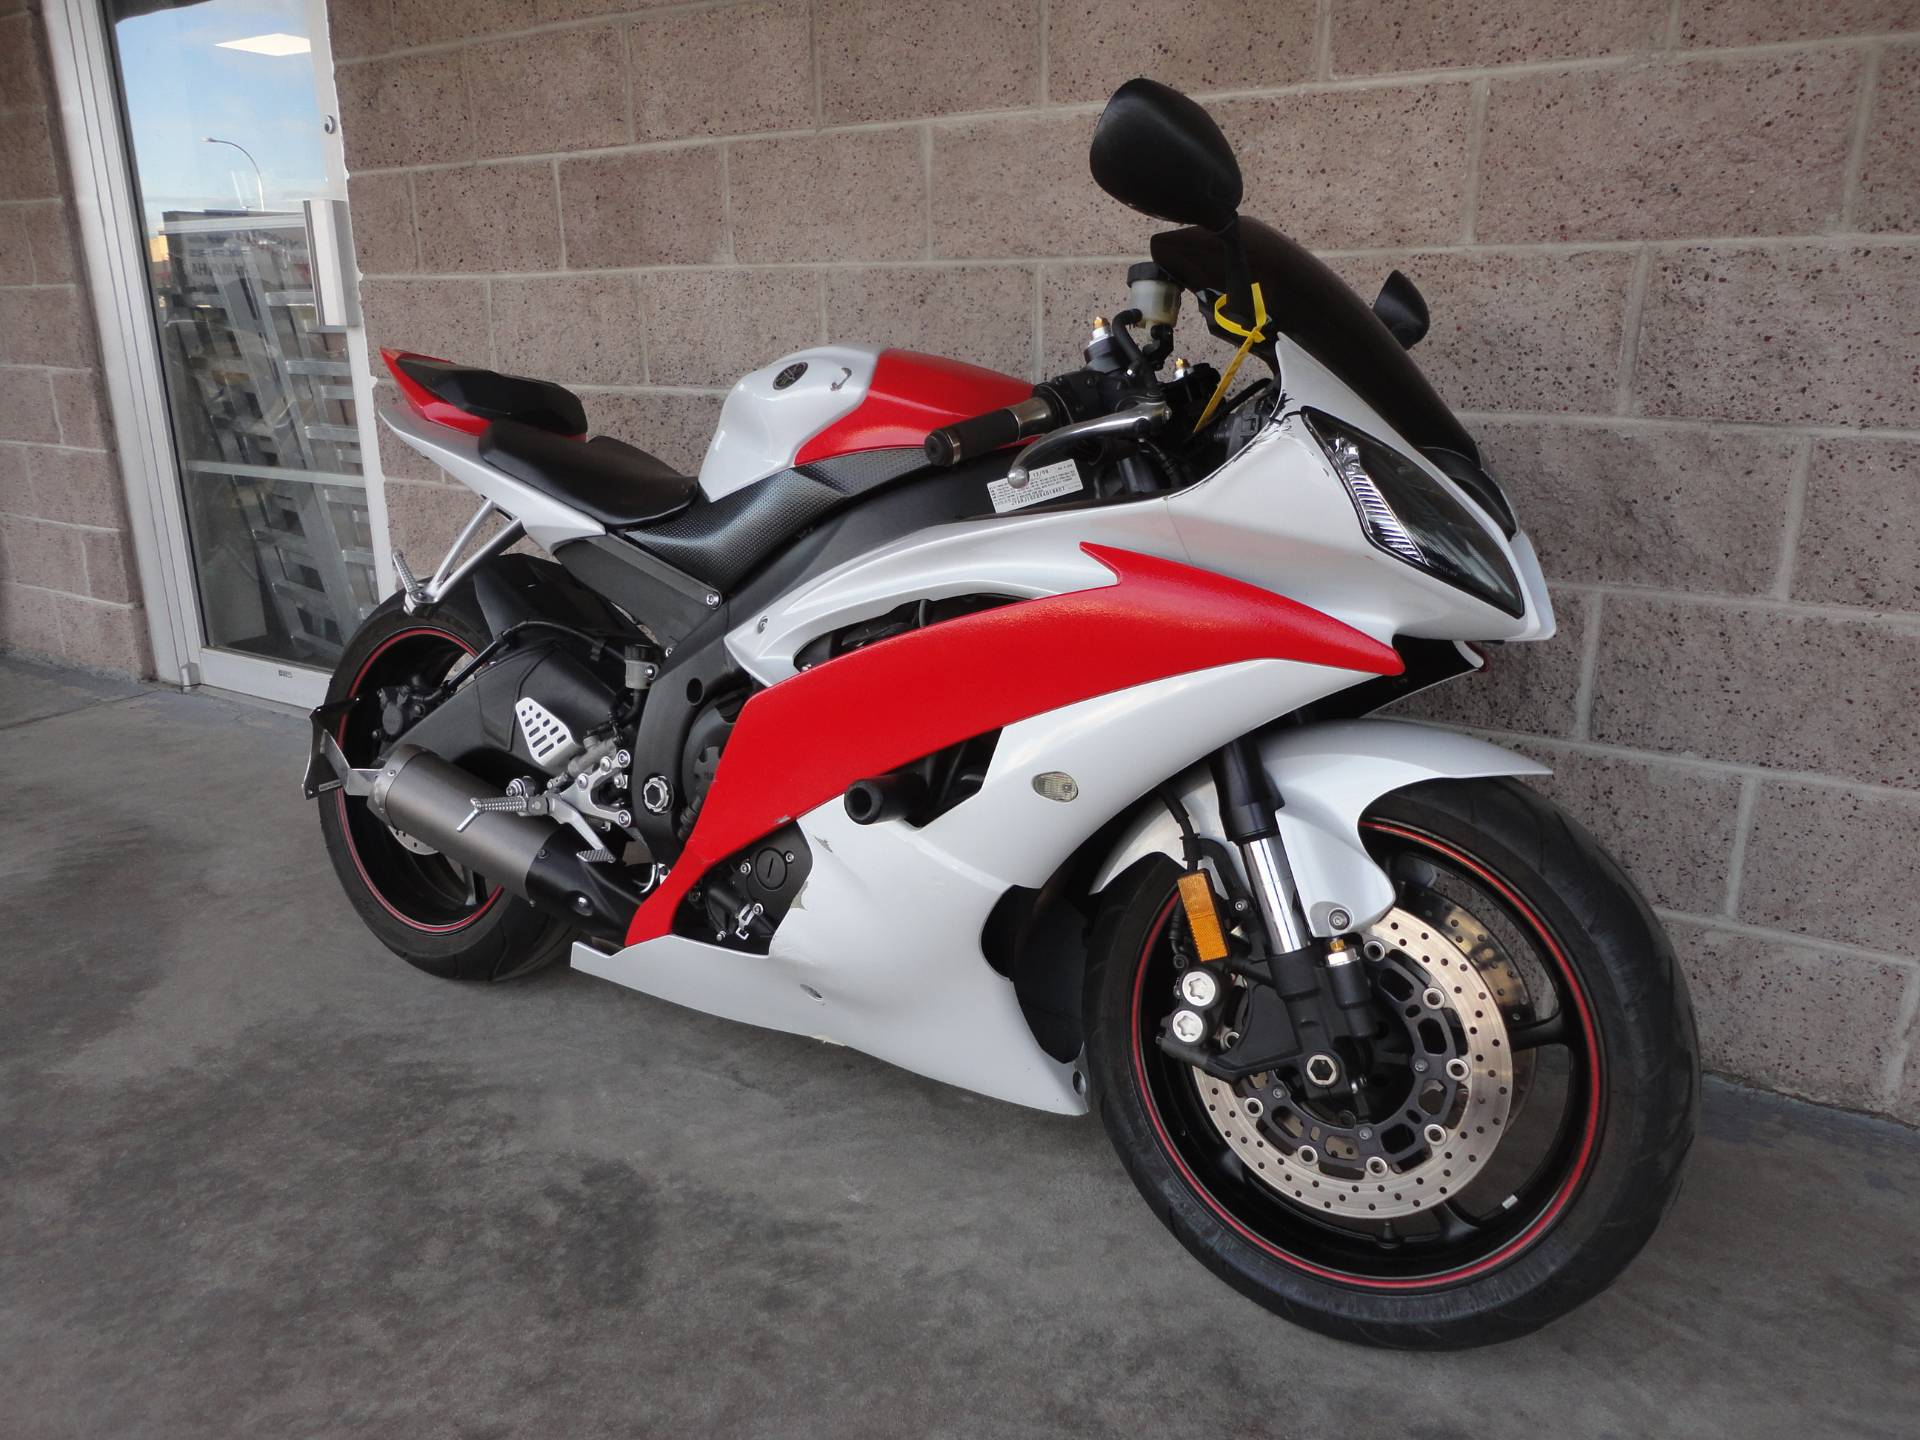 2009 Yamaha YZF-R6 in Denver, Colorado